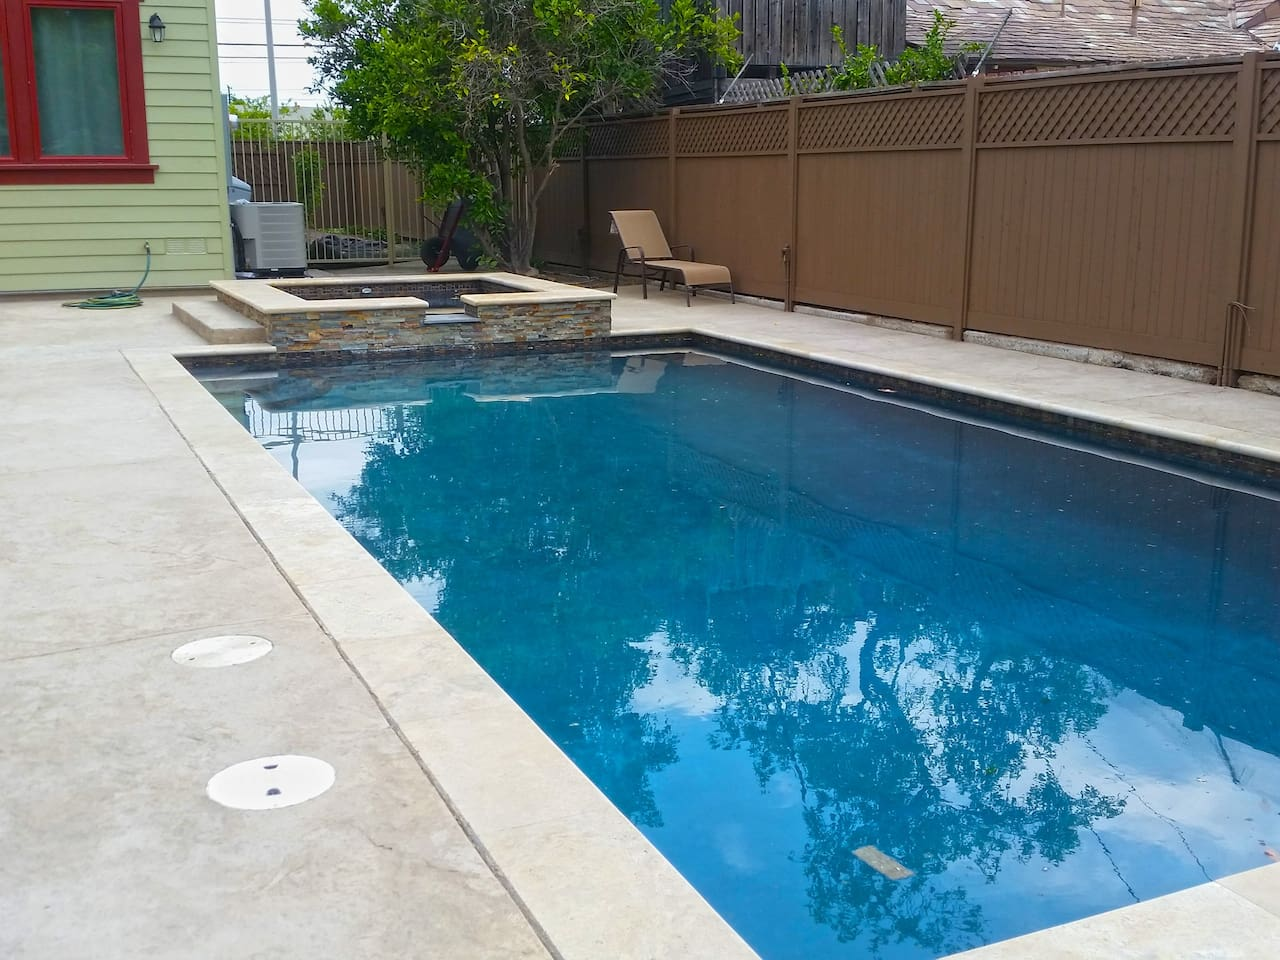 crone castle 6 bdr home sleeps 15 houses for rent in anaheim